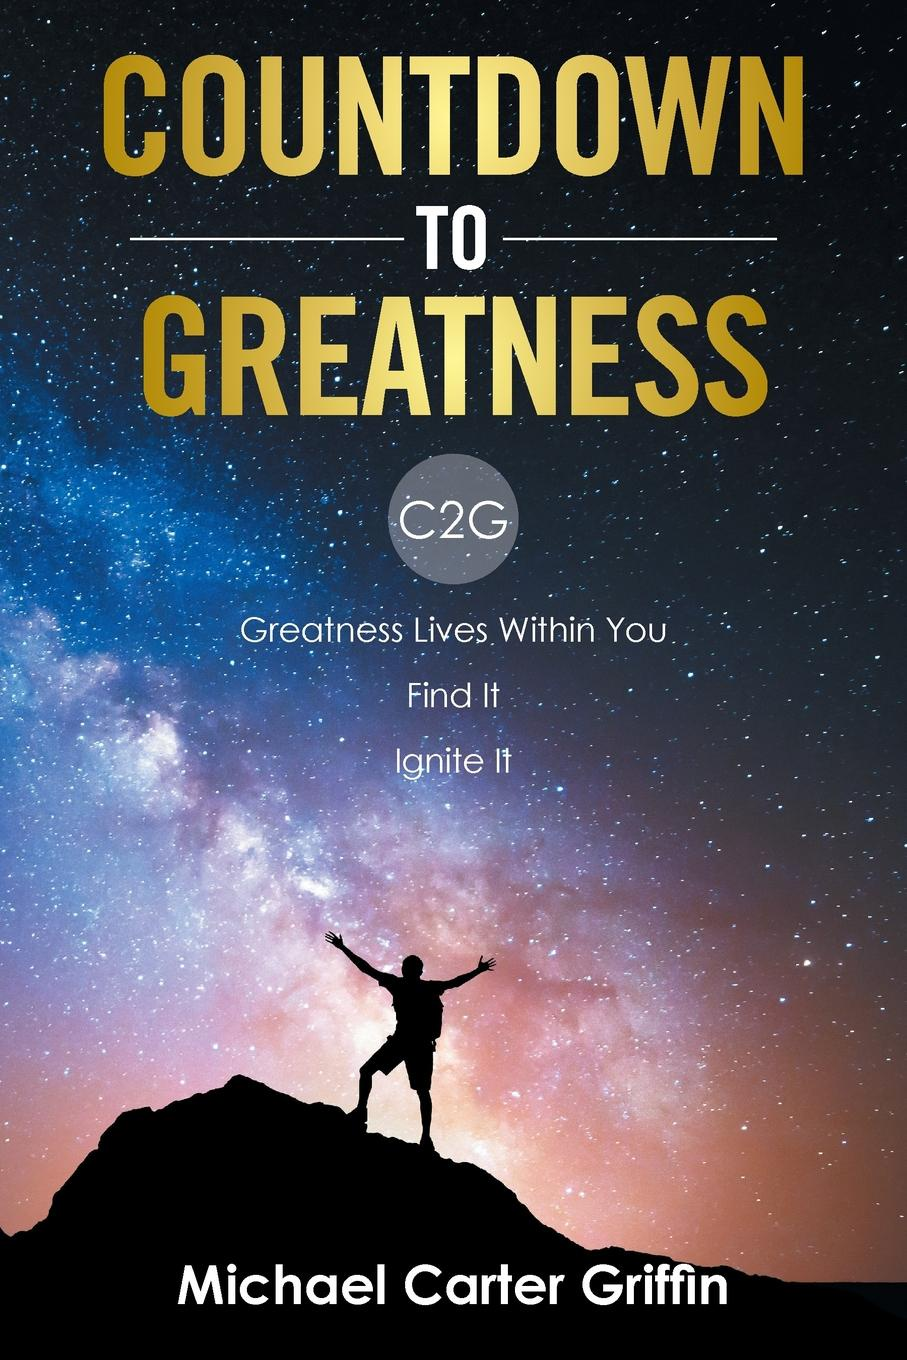 Michael Carter Griffin Countdown to Greatness. C2g Greatness Lives Within You Find It Ignite It stephen johnson scott emergent ignite purpose transform culture make change stick